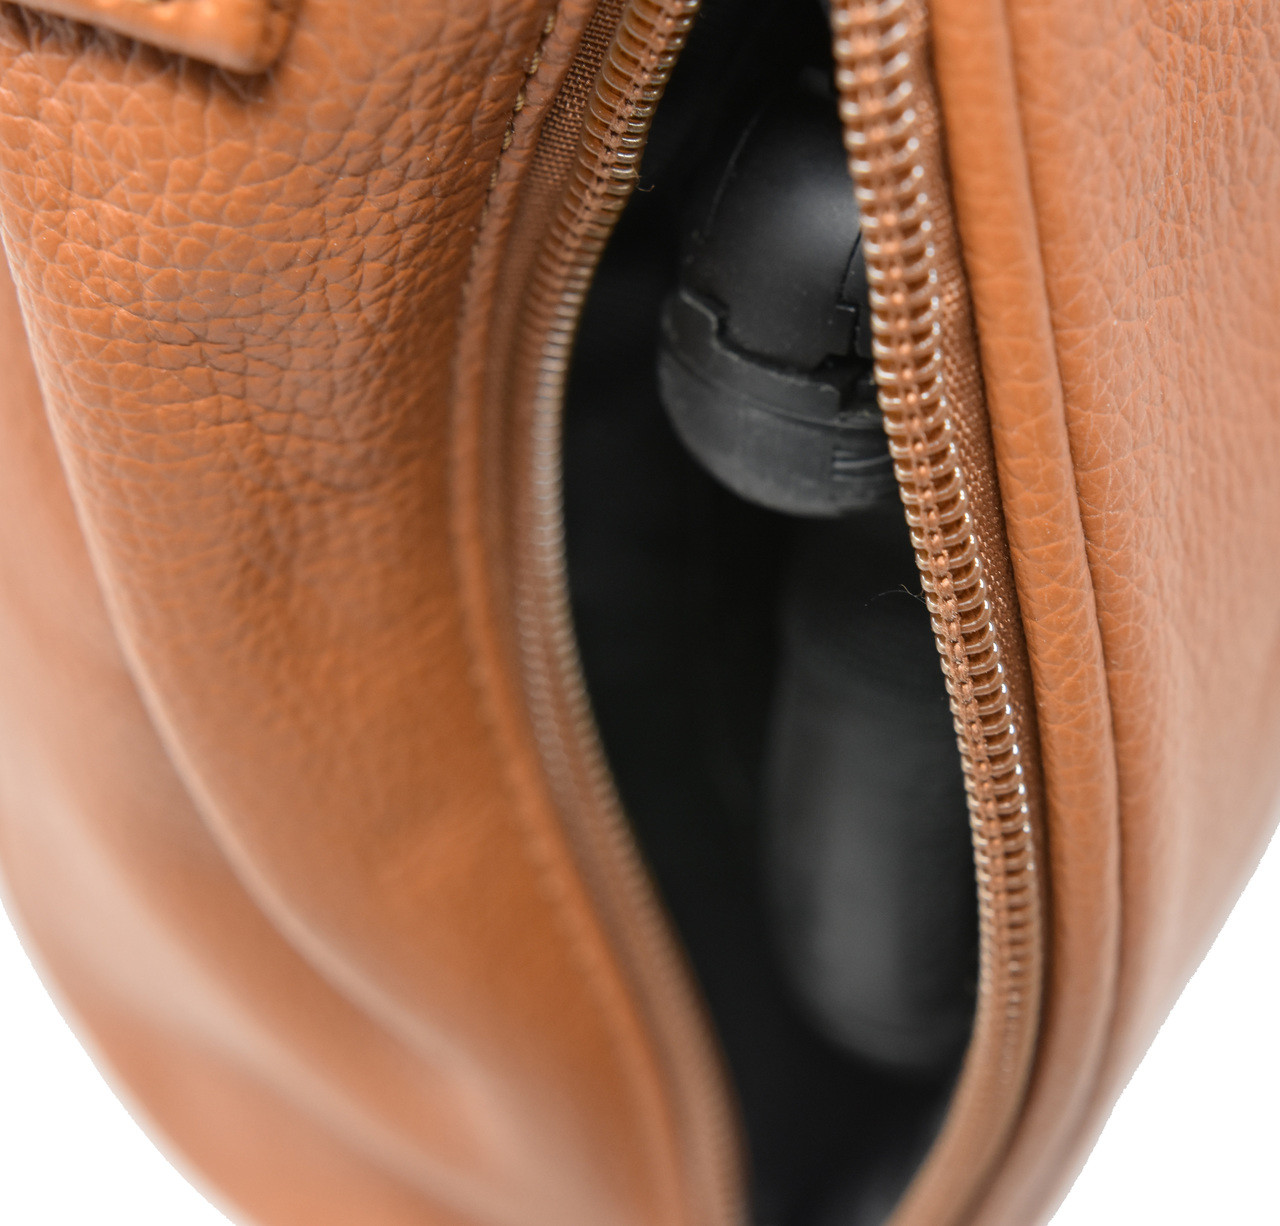 LT Brown Crossbody or Shoulder Carry Leather Locking Concealment Purse  - CCW Concealed Carry Gun Bag